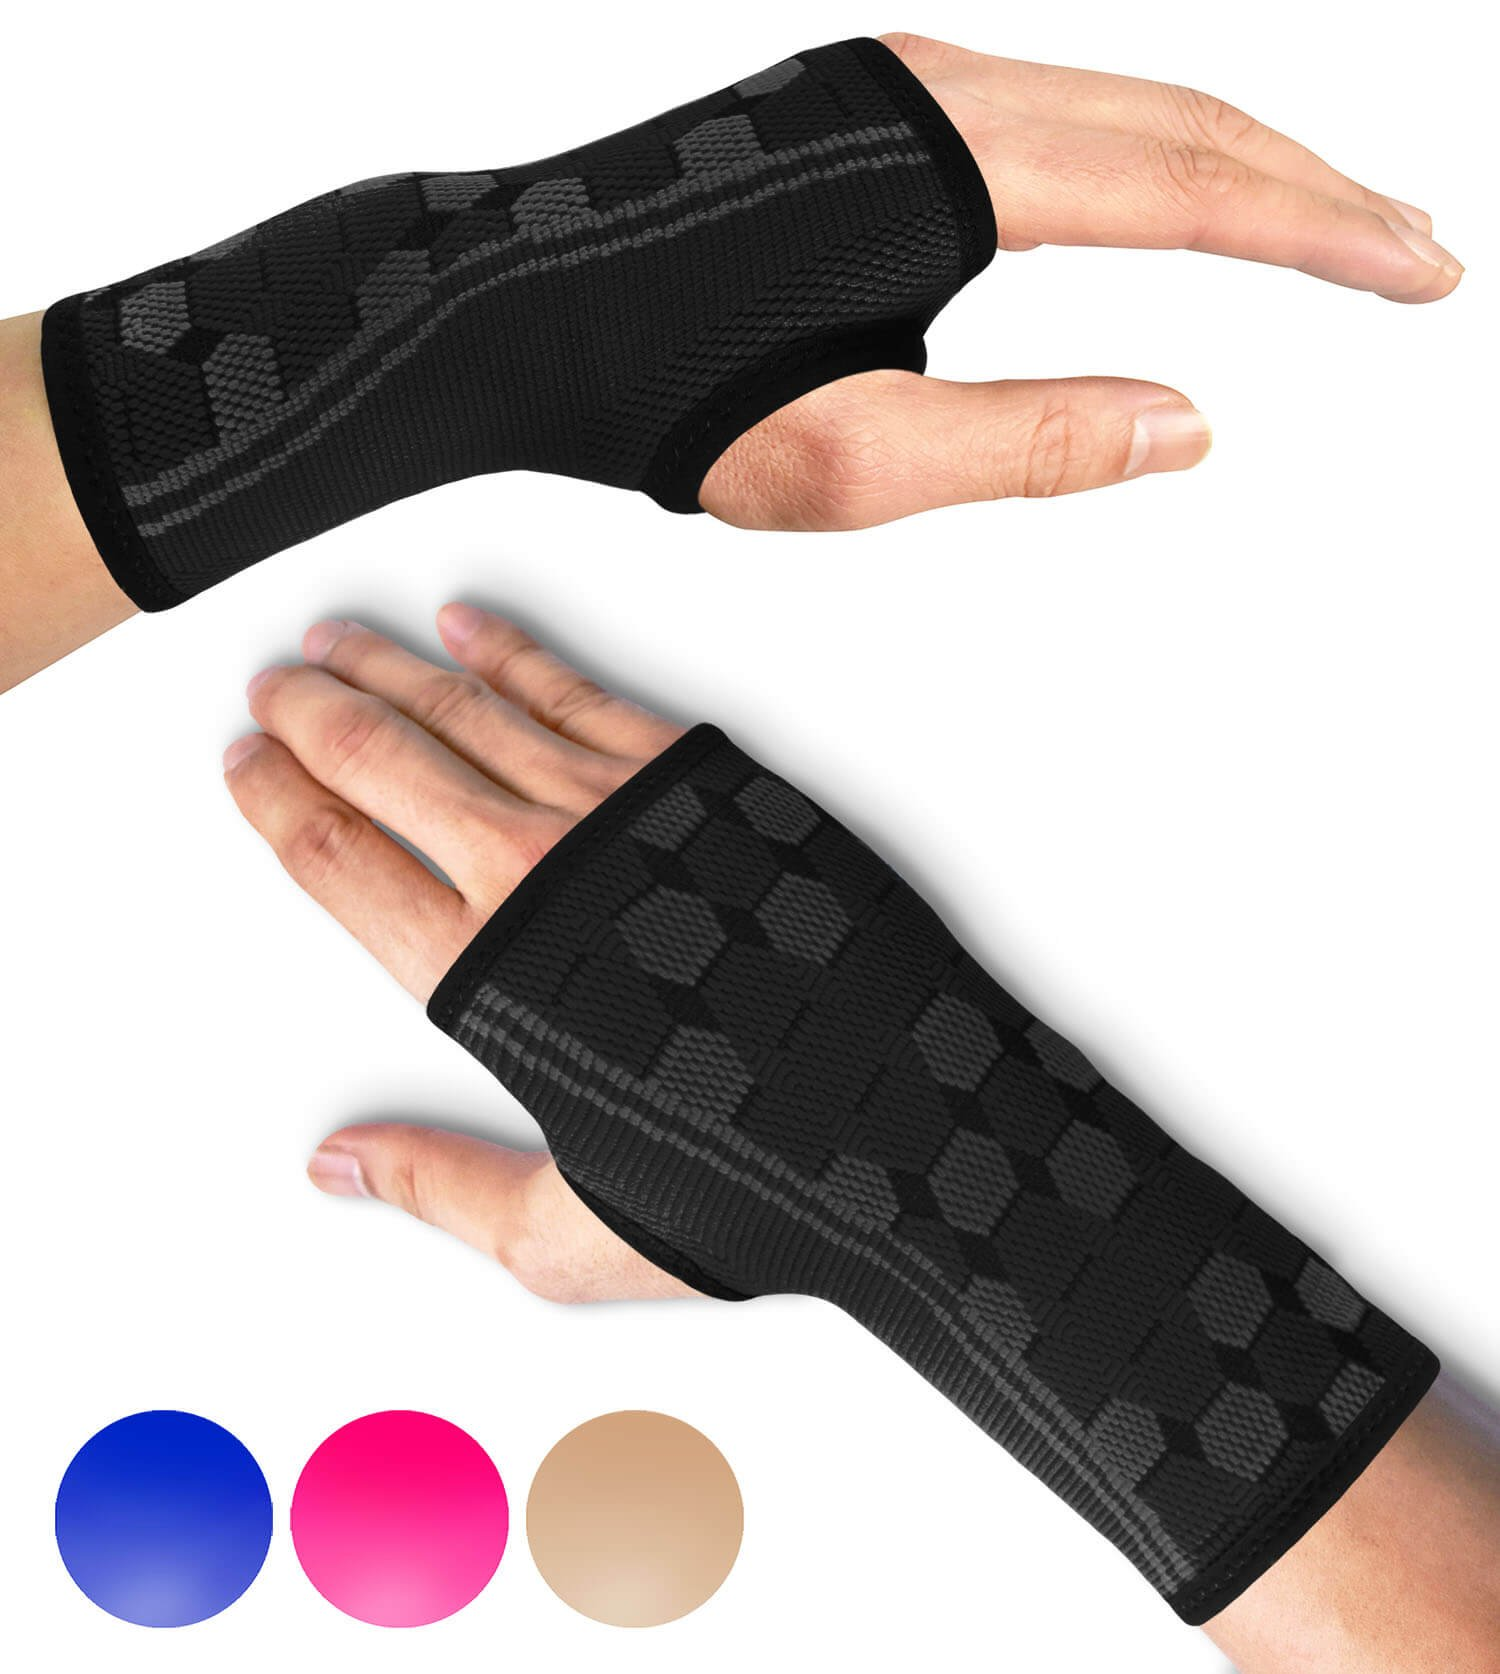 Sparthos Wrist Support Sleeves by (Pair) – Compression Wrist Brace for Men and Women - Carpal Tunnel Tendonitis Arthritis Pain Relief Recovery from Wrist Pain, Strains, Sprains, Bursitis (Black-S)